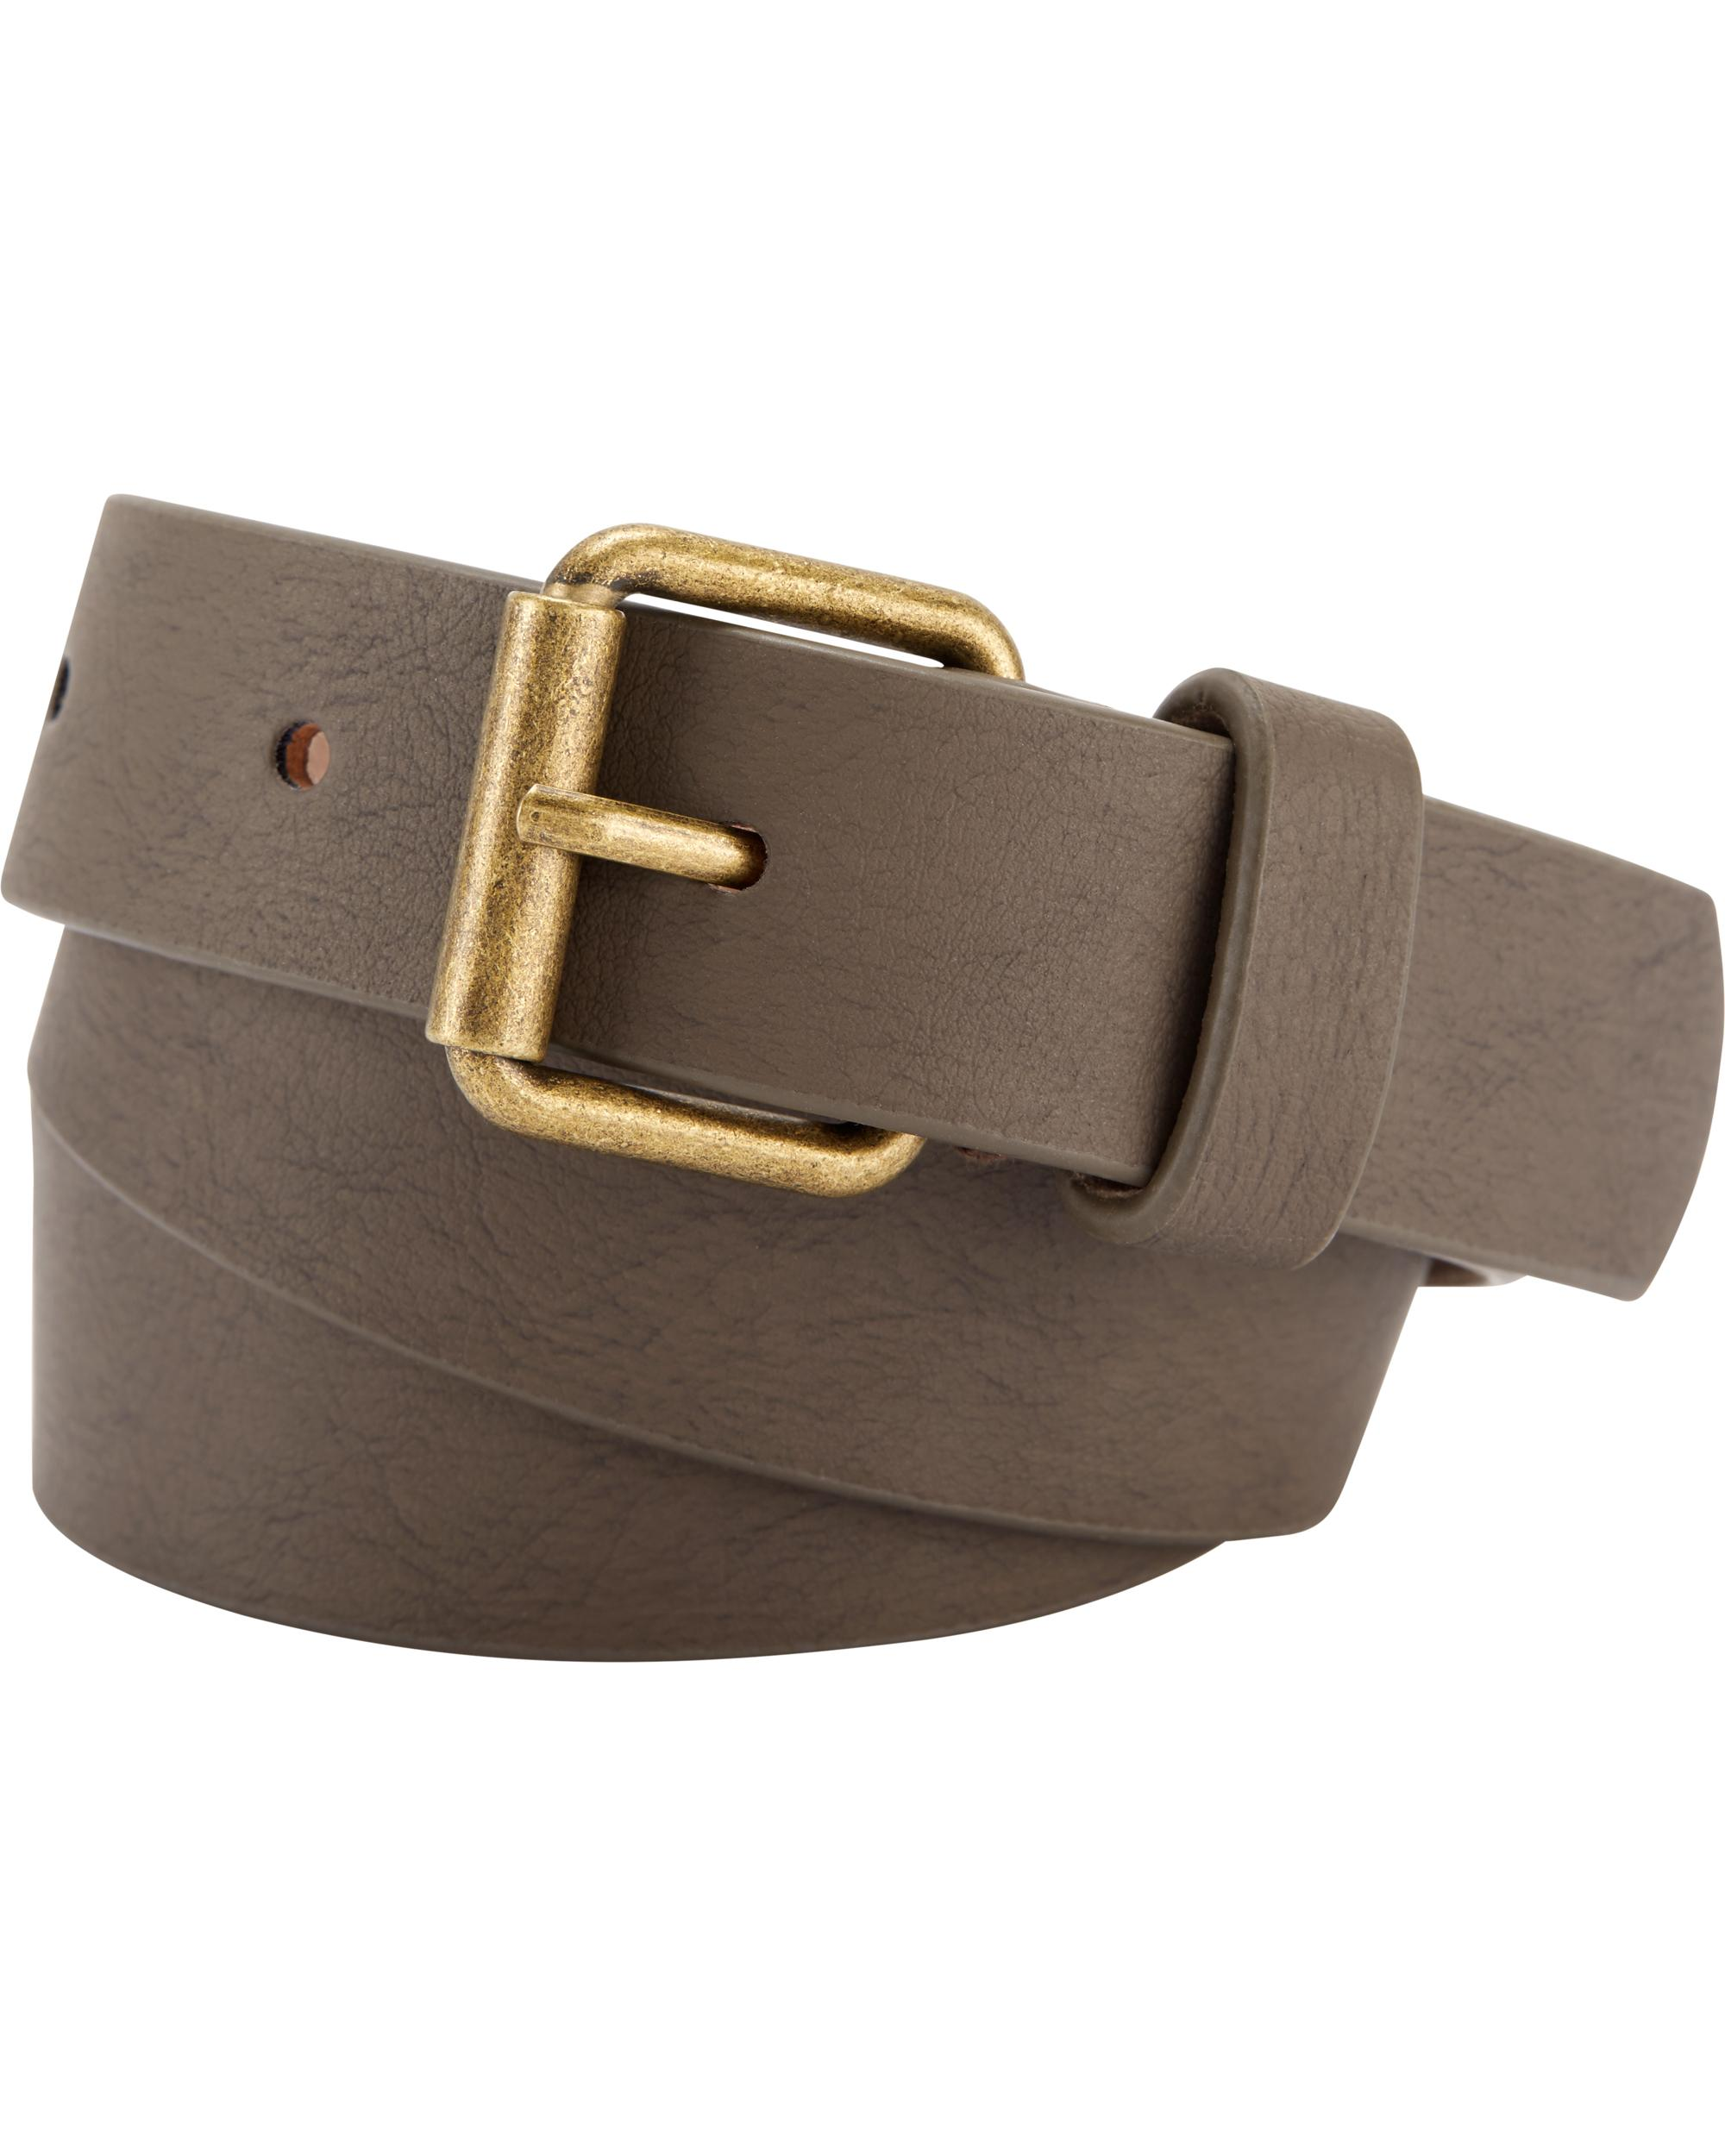 6faa7ceeabd Casual Buckle Belt – Yashry